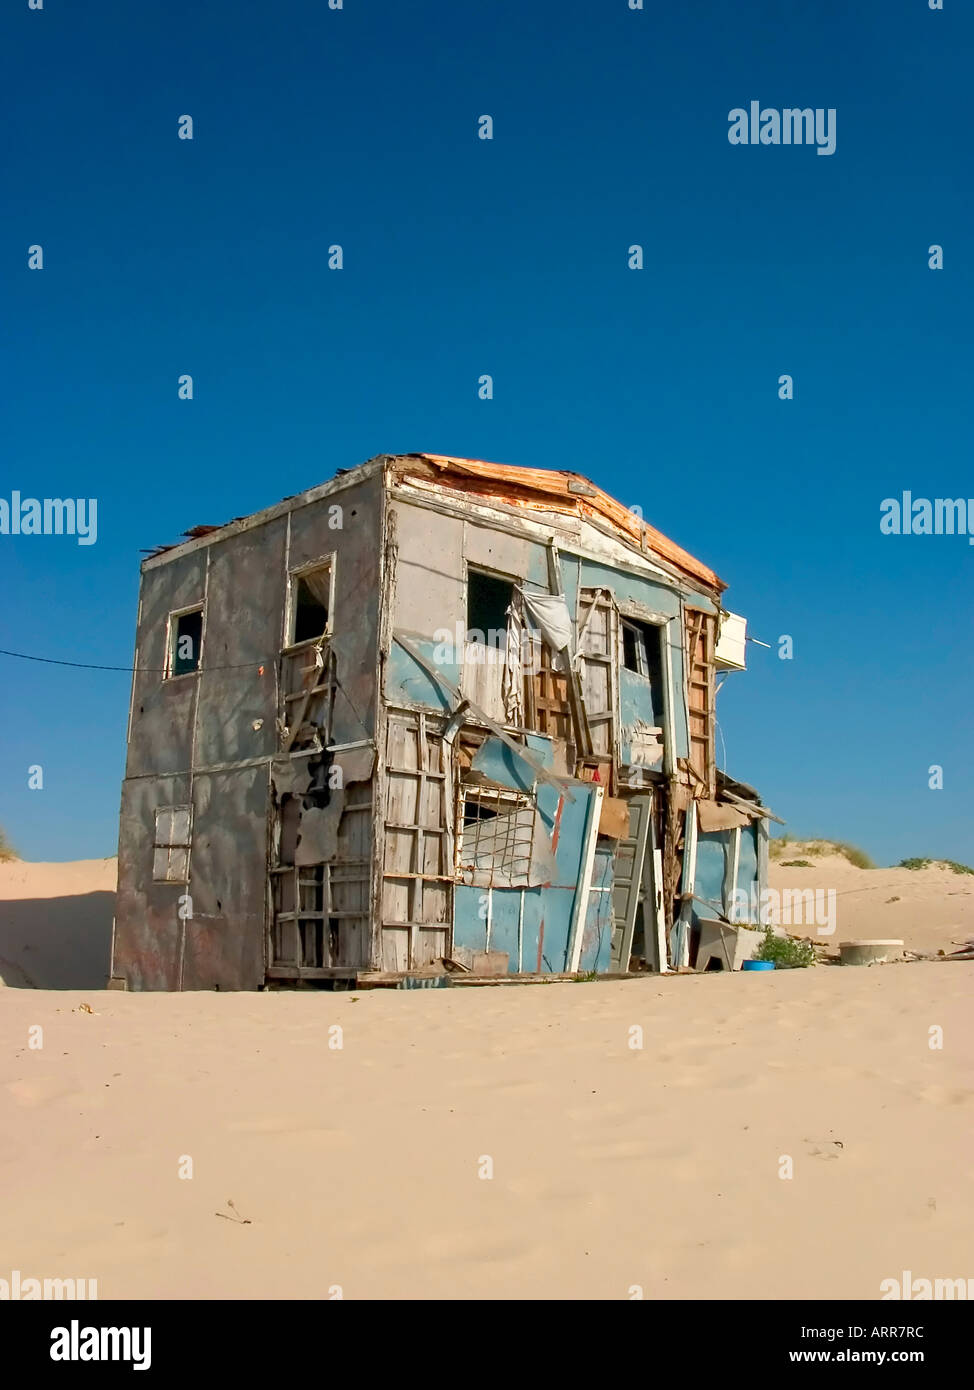 old house construction architecture - Stock Image